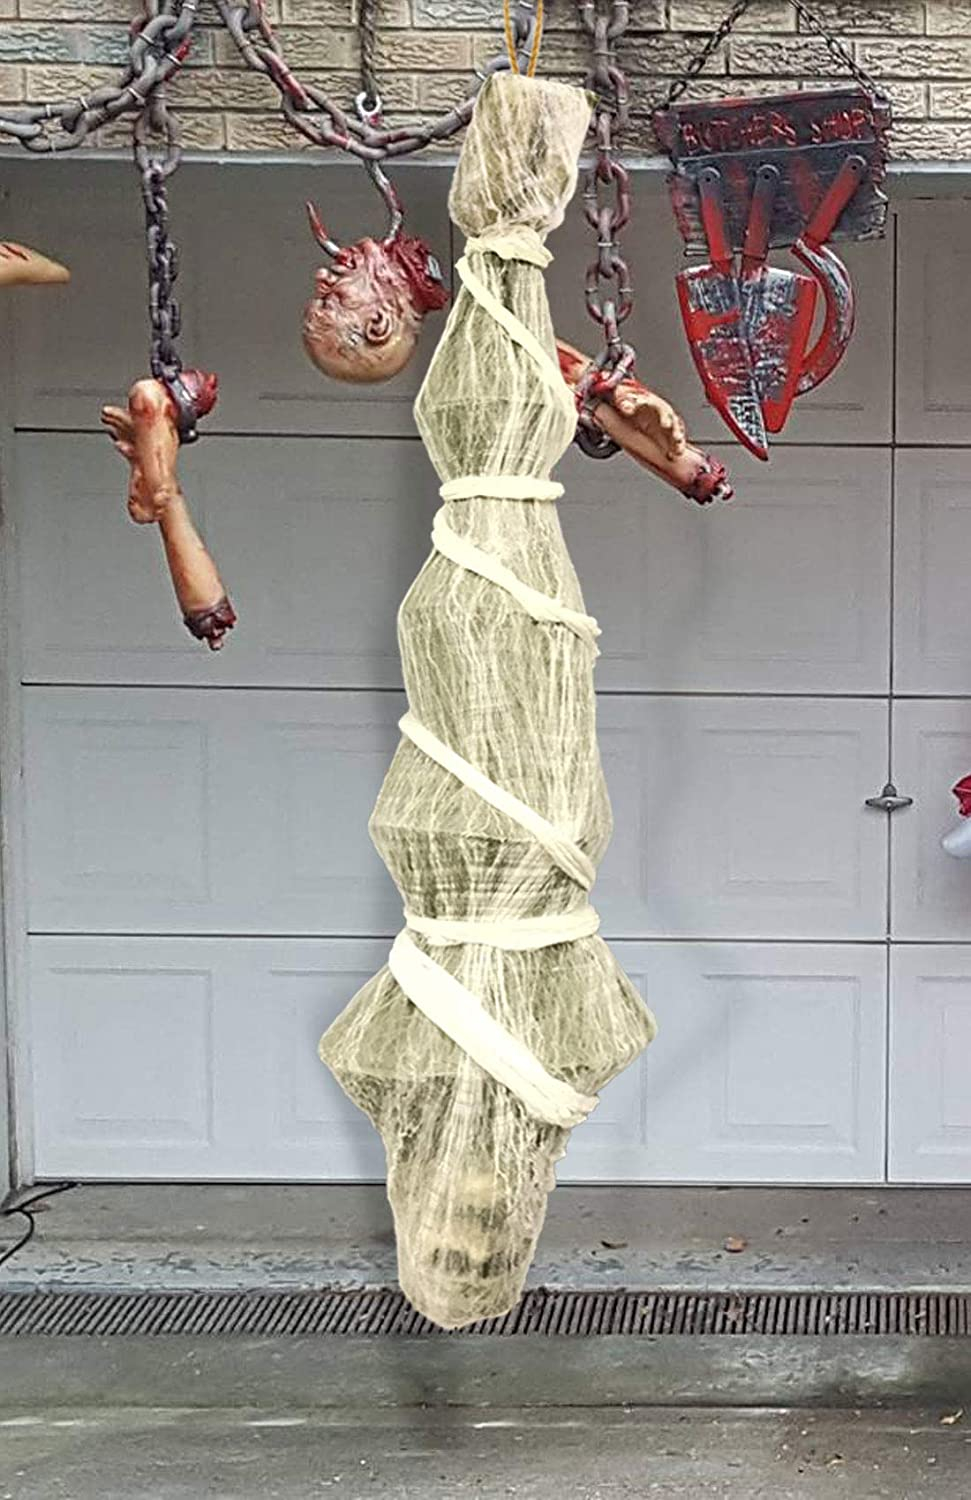 Hanging Corpses Props Scary Skeleton Body Inside Spider Web Halloween Yard